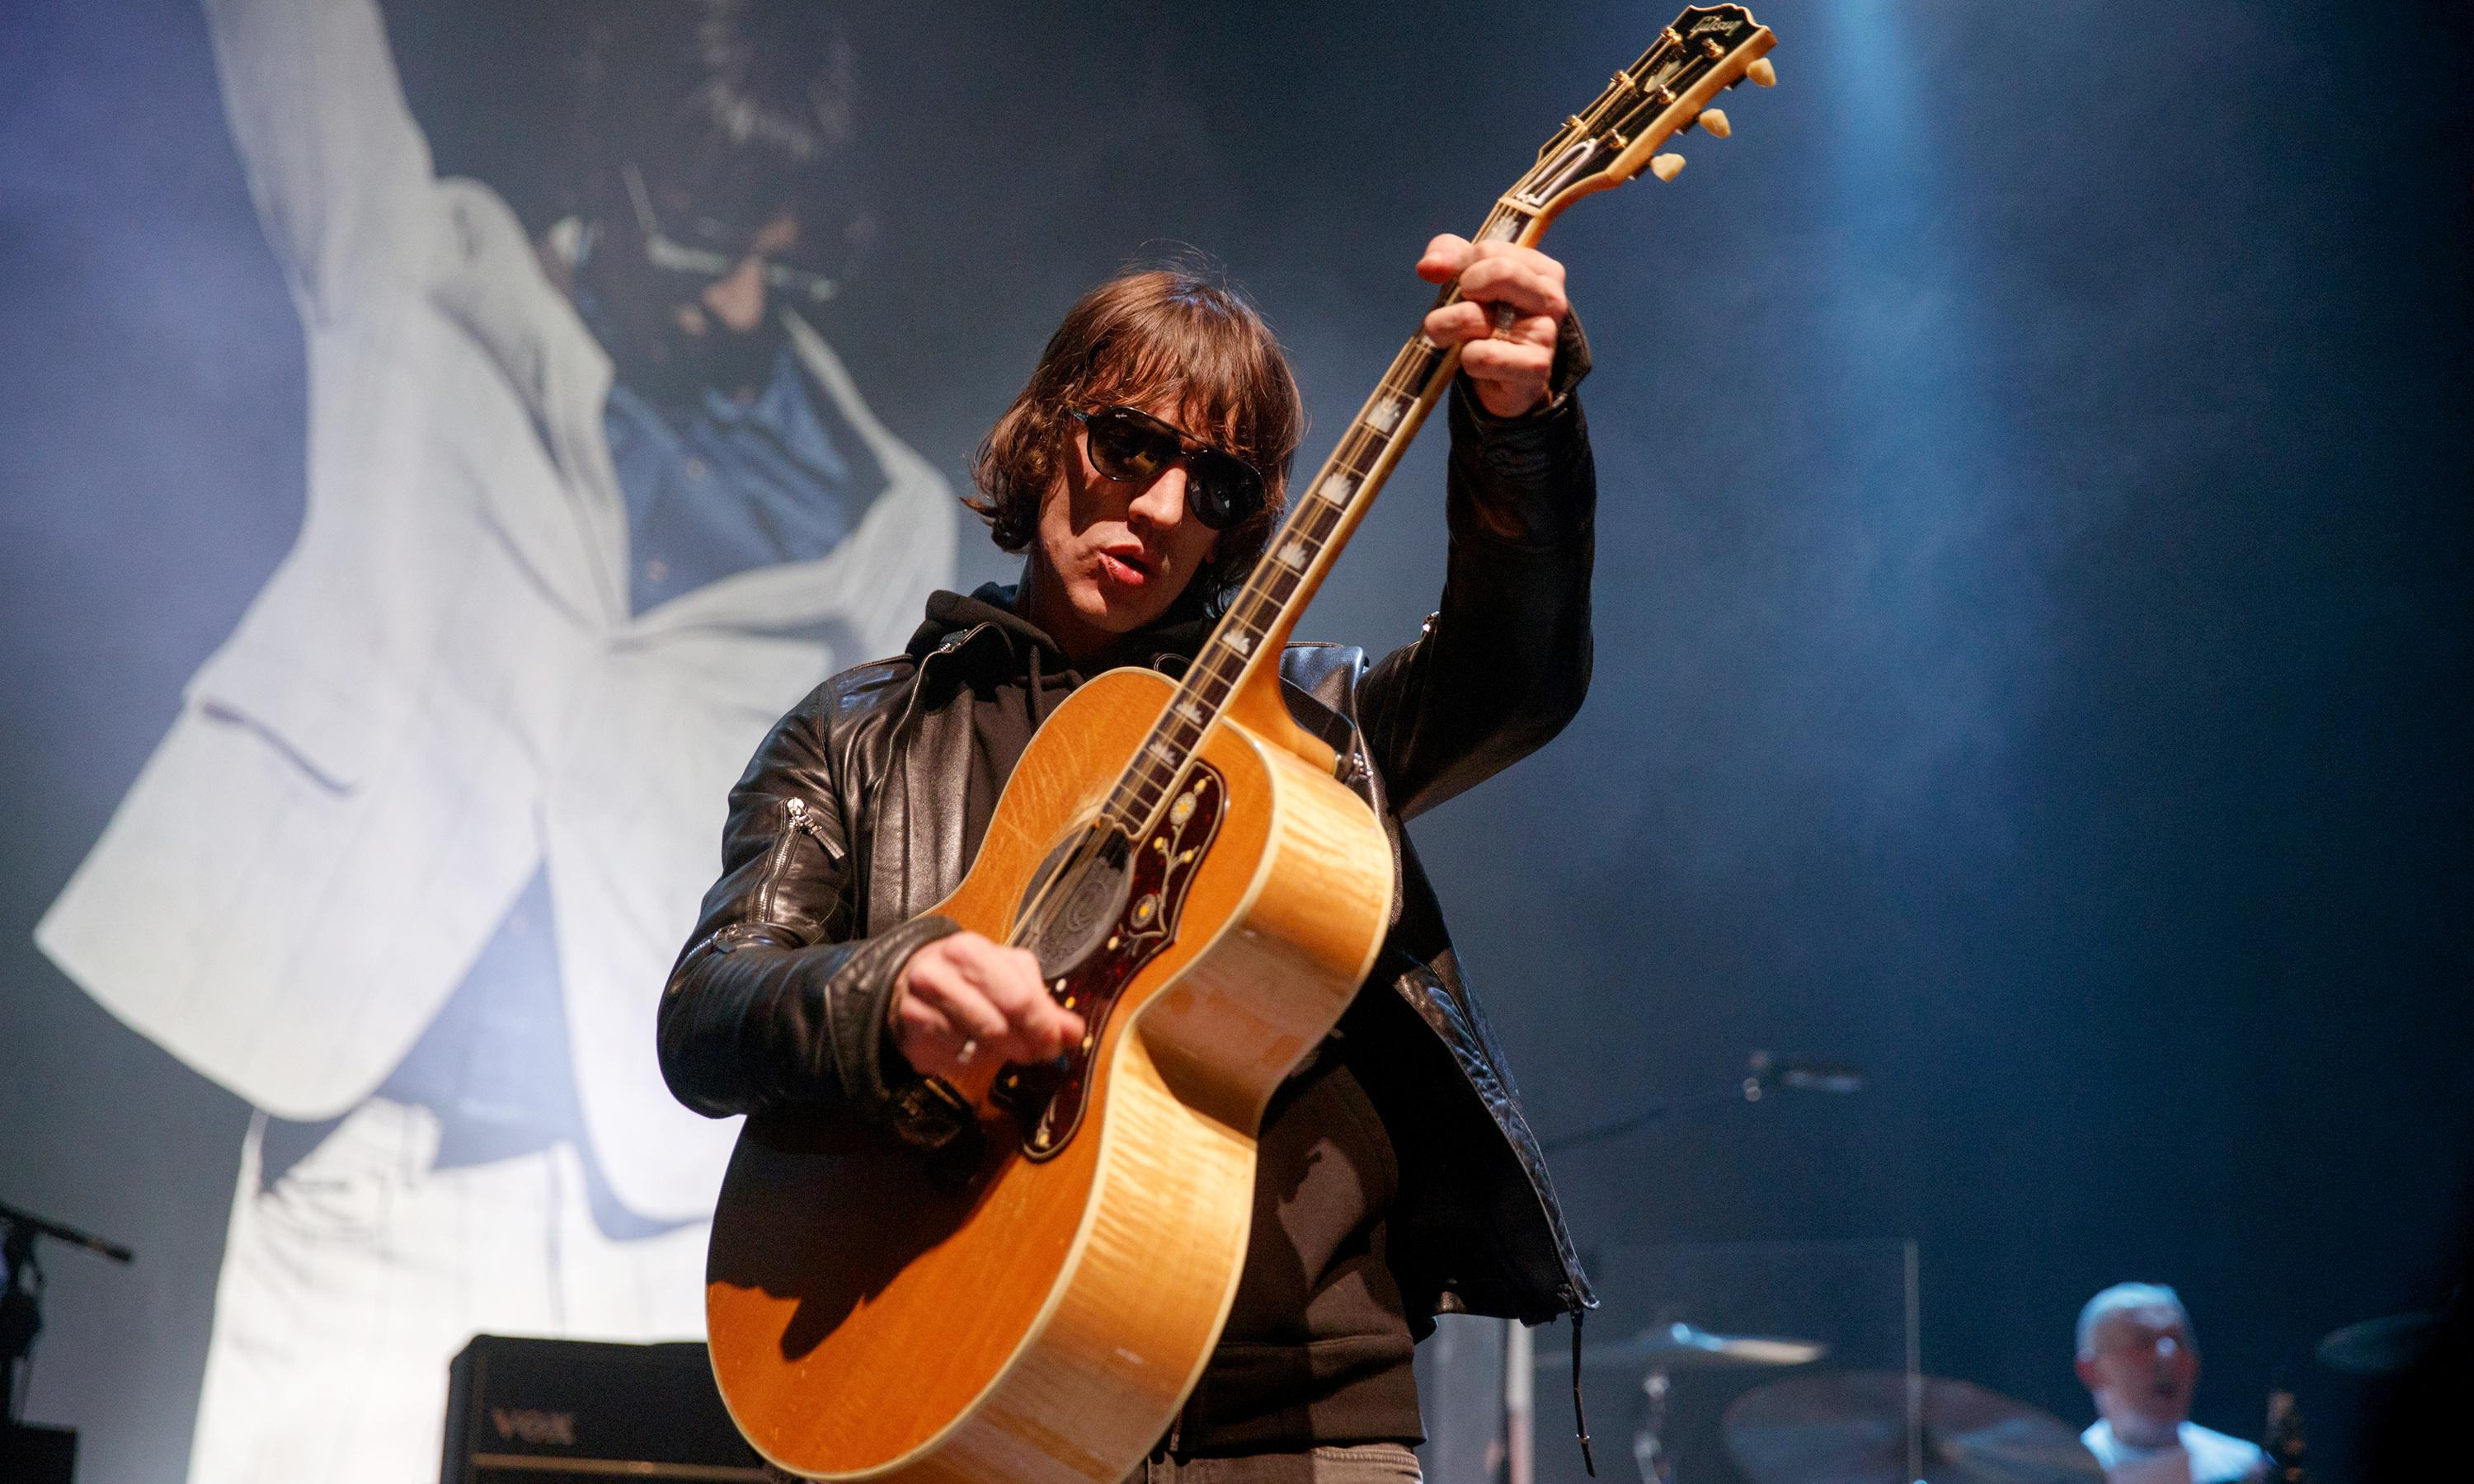 Richard Ashcroft making up with Mick can't change the mould